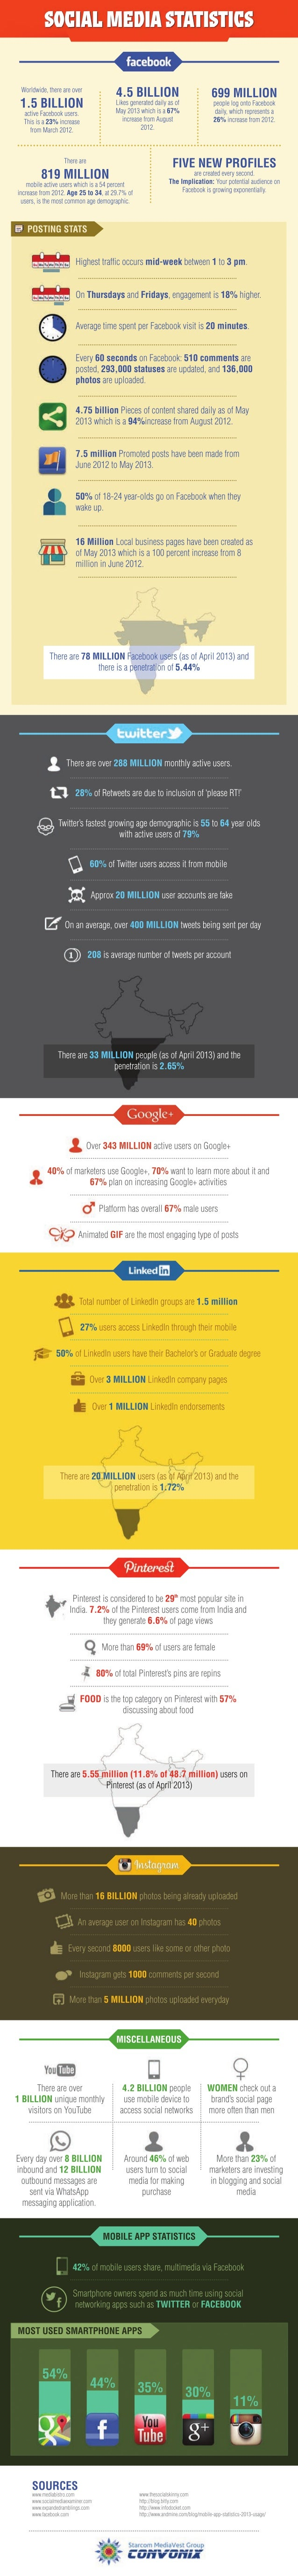 Social Networking Statistics & Facts - 2013